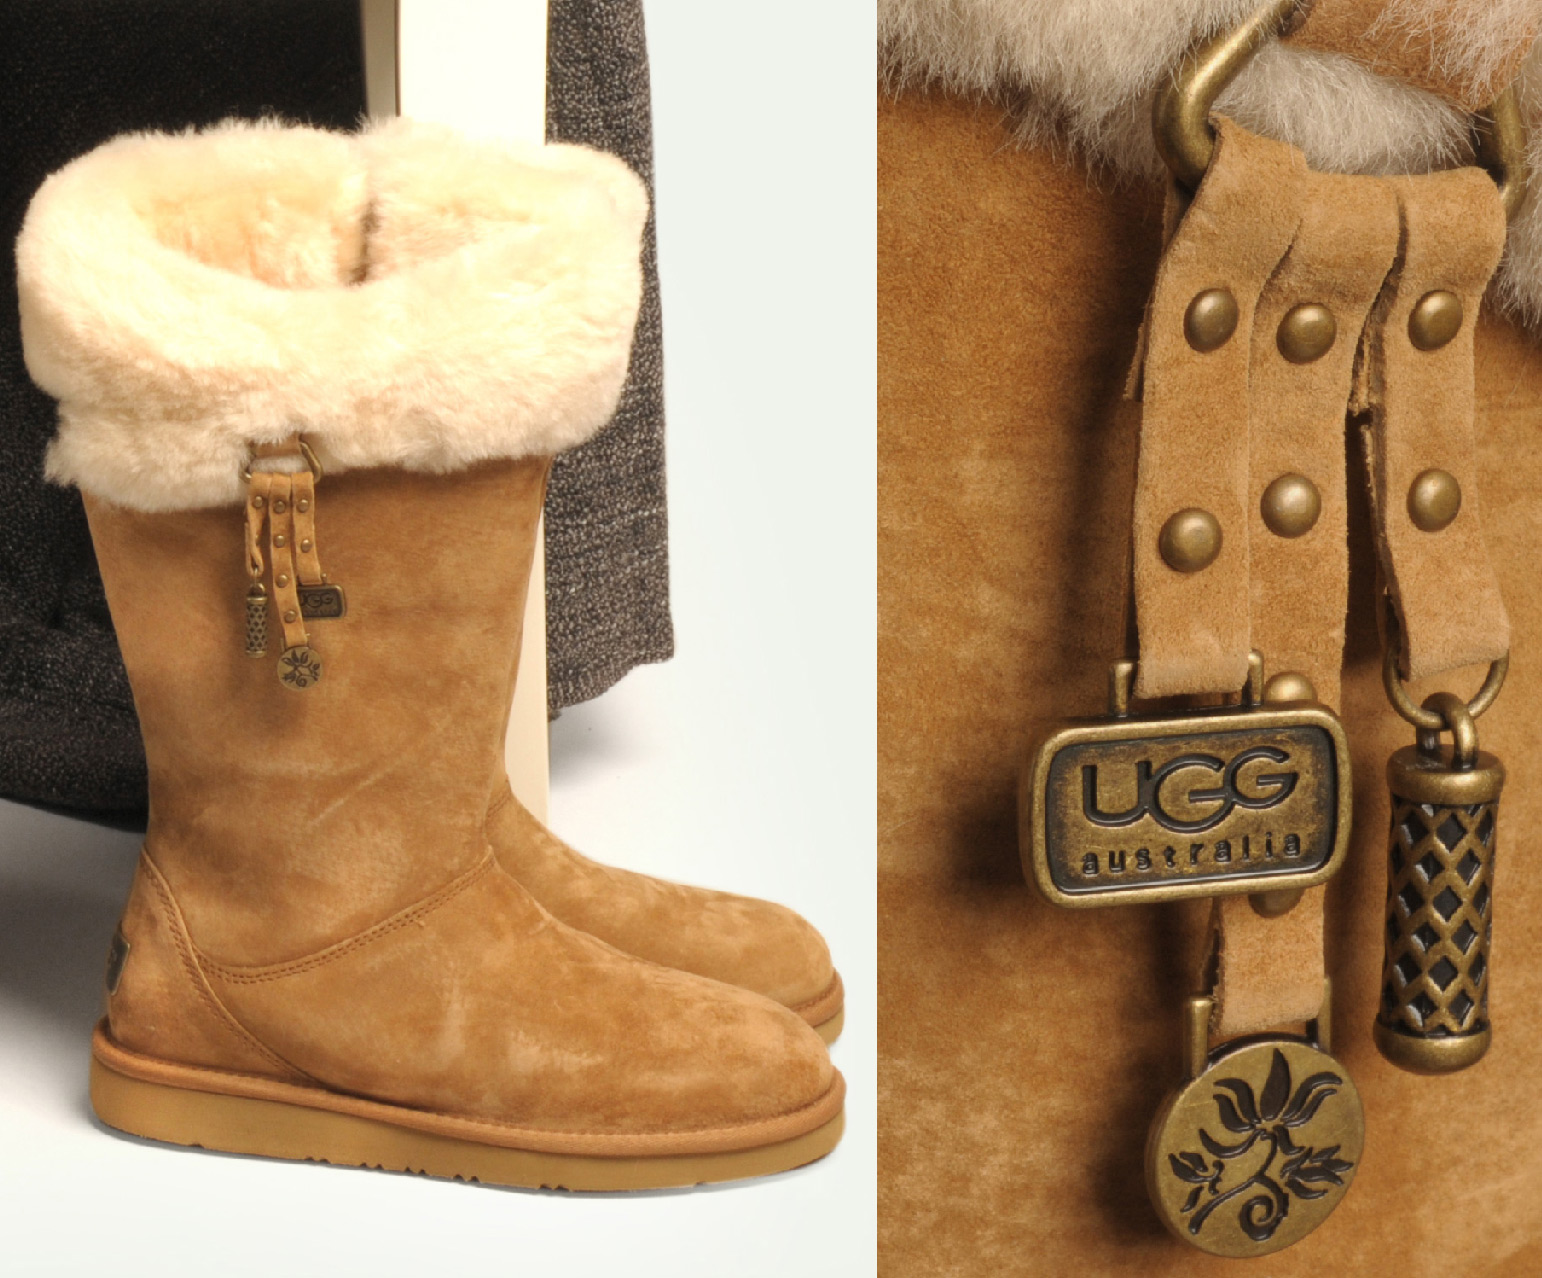 fe9de6eb9a1 Boots Mgc Leather Cheap Watches Ugg Life WrdQCoxBe